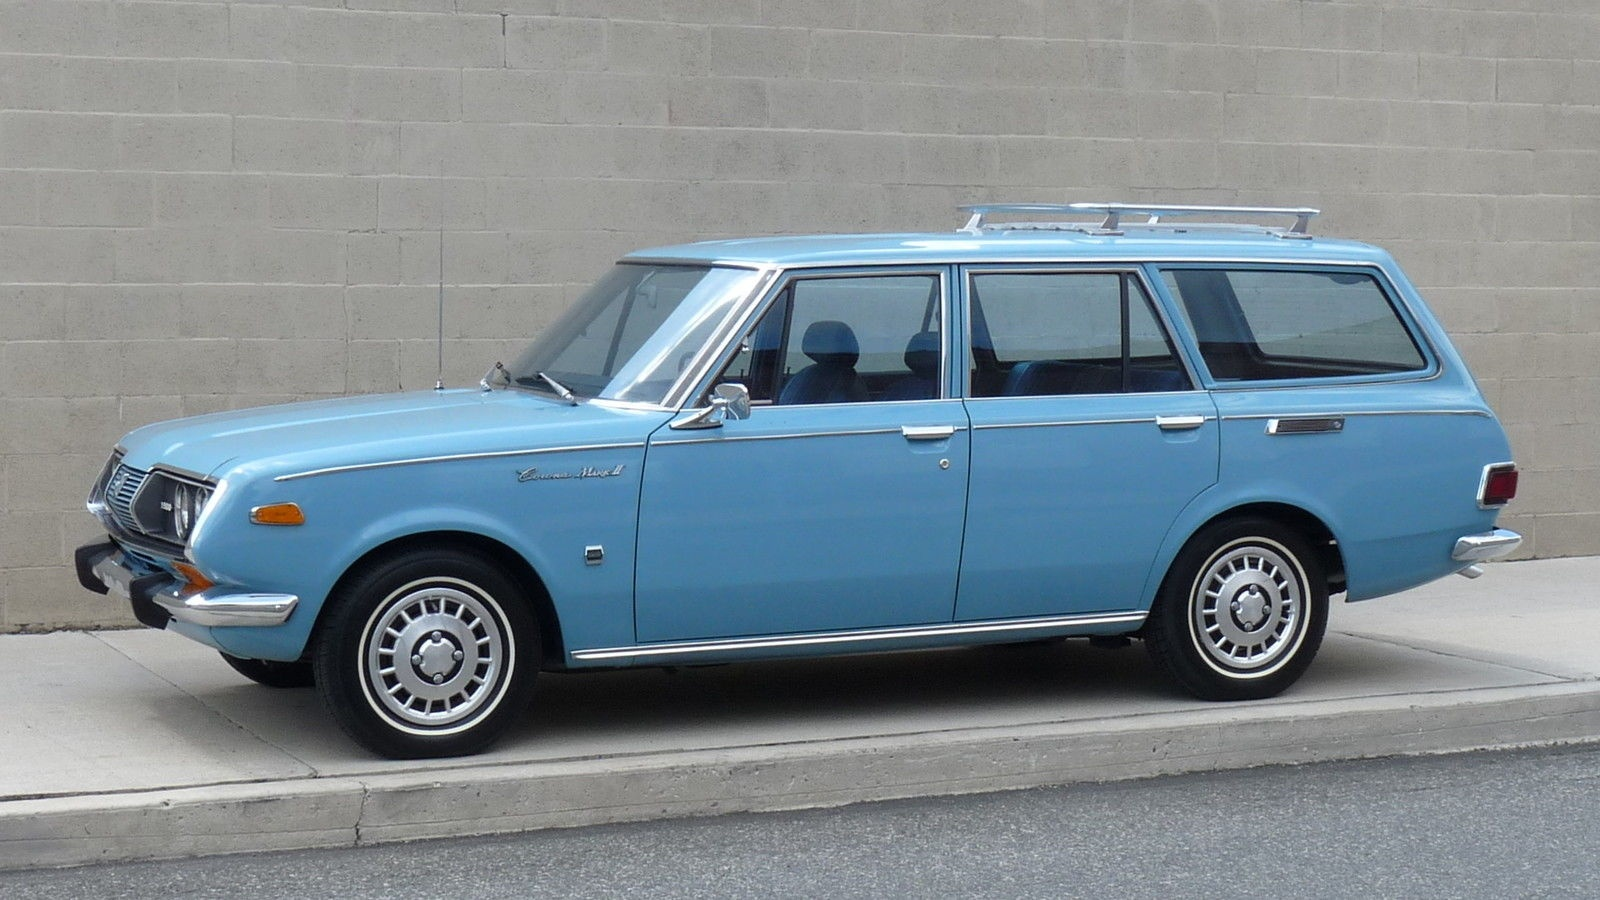 13 392 miles 1971 toyota corona mk ii wagon. Black Bedroom Furniture Sets. Home Design Ideas